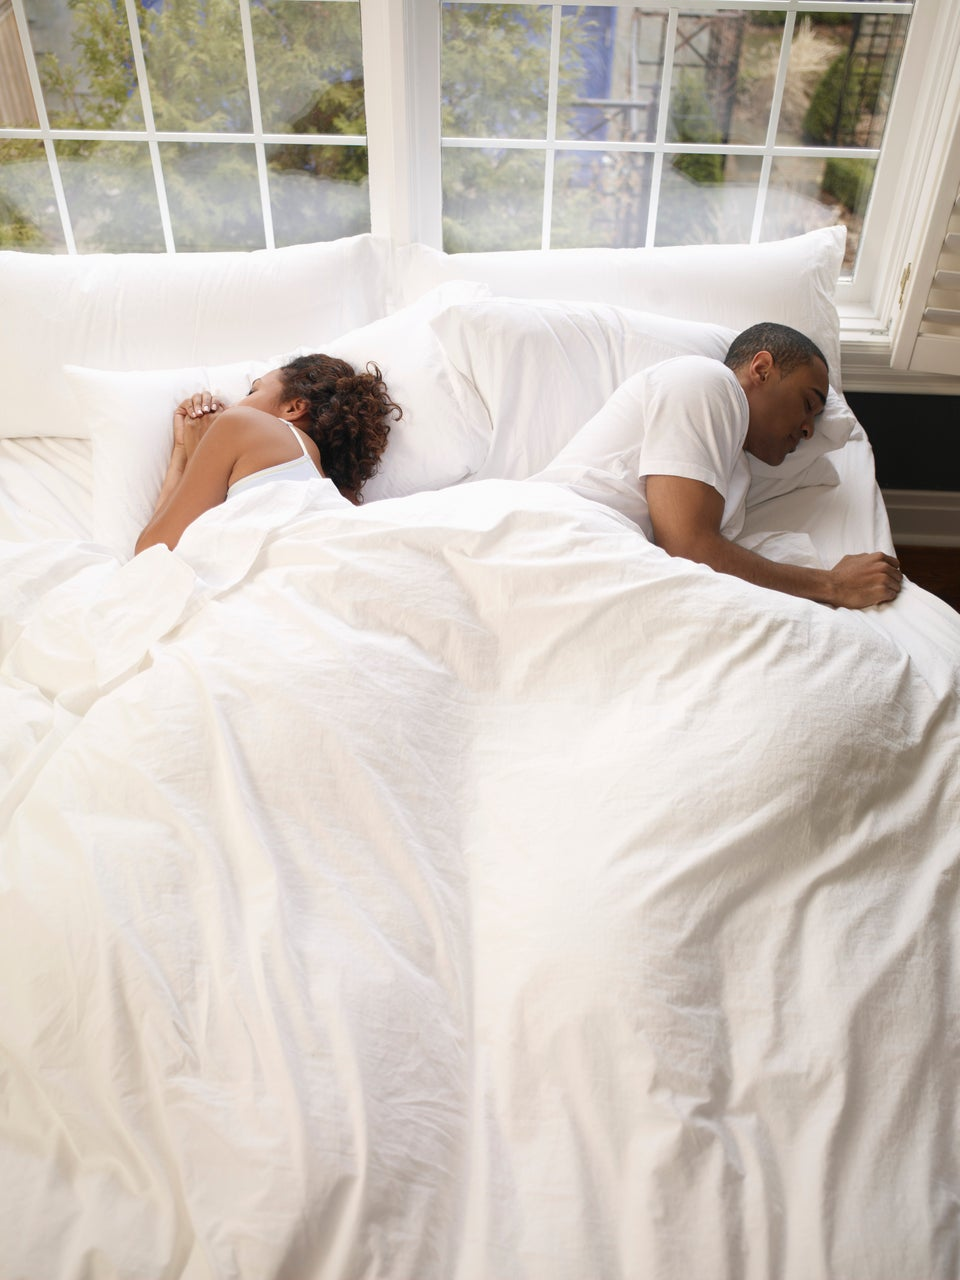 7 Things You Should Never Be Afraid to Talk About In Bed